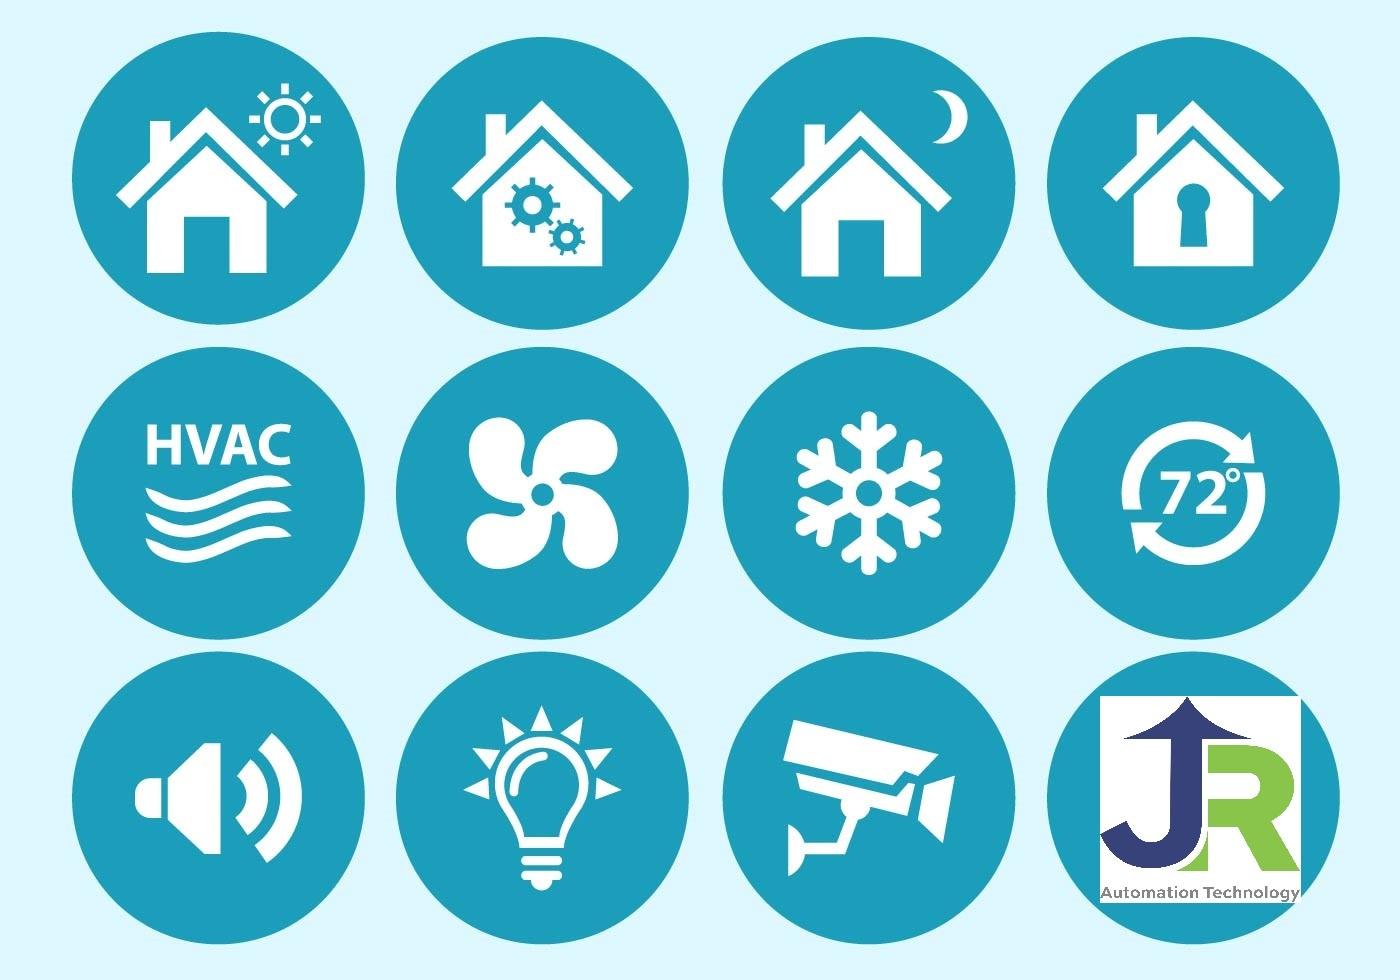 How to start a home automation business partnership with well known company?